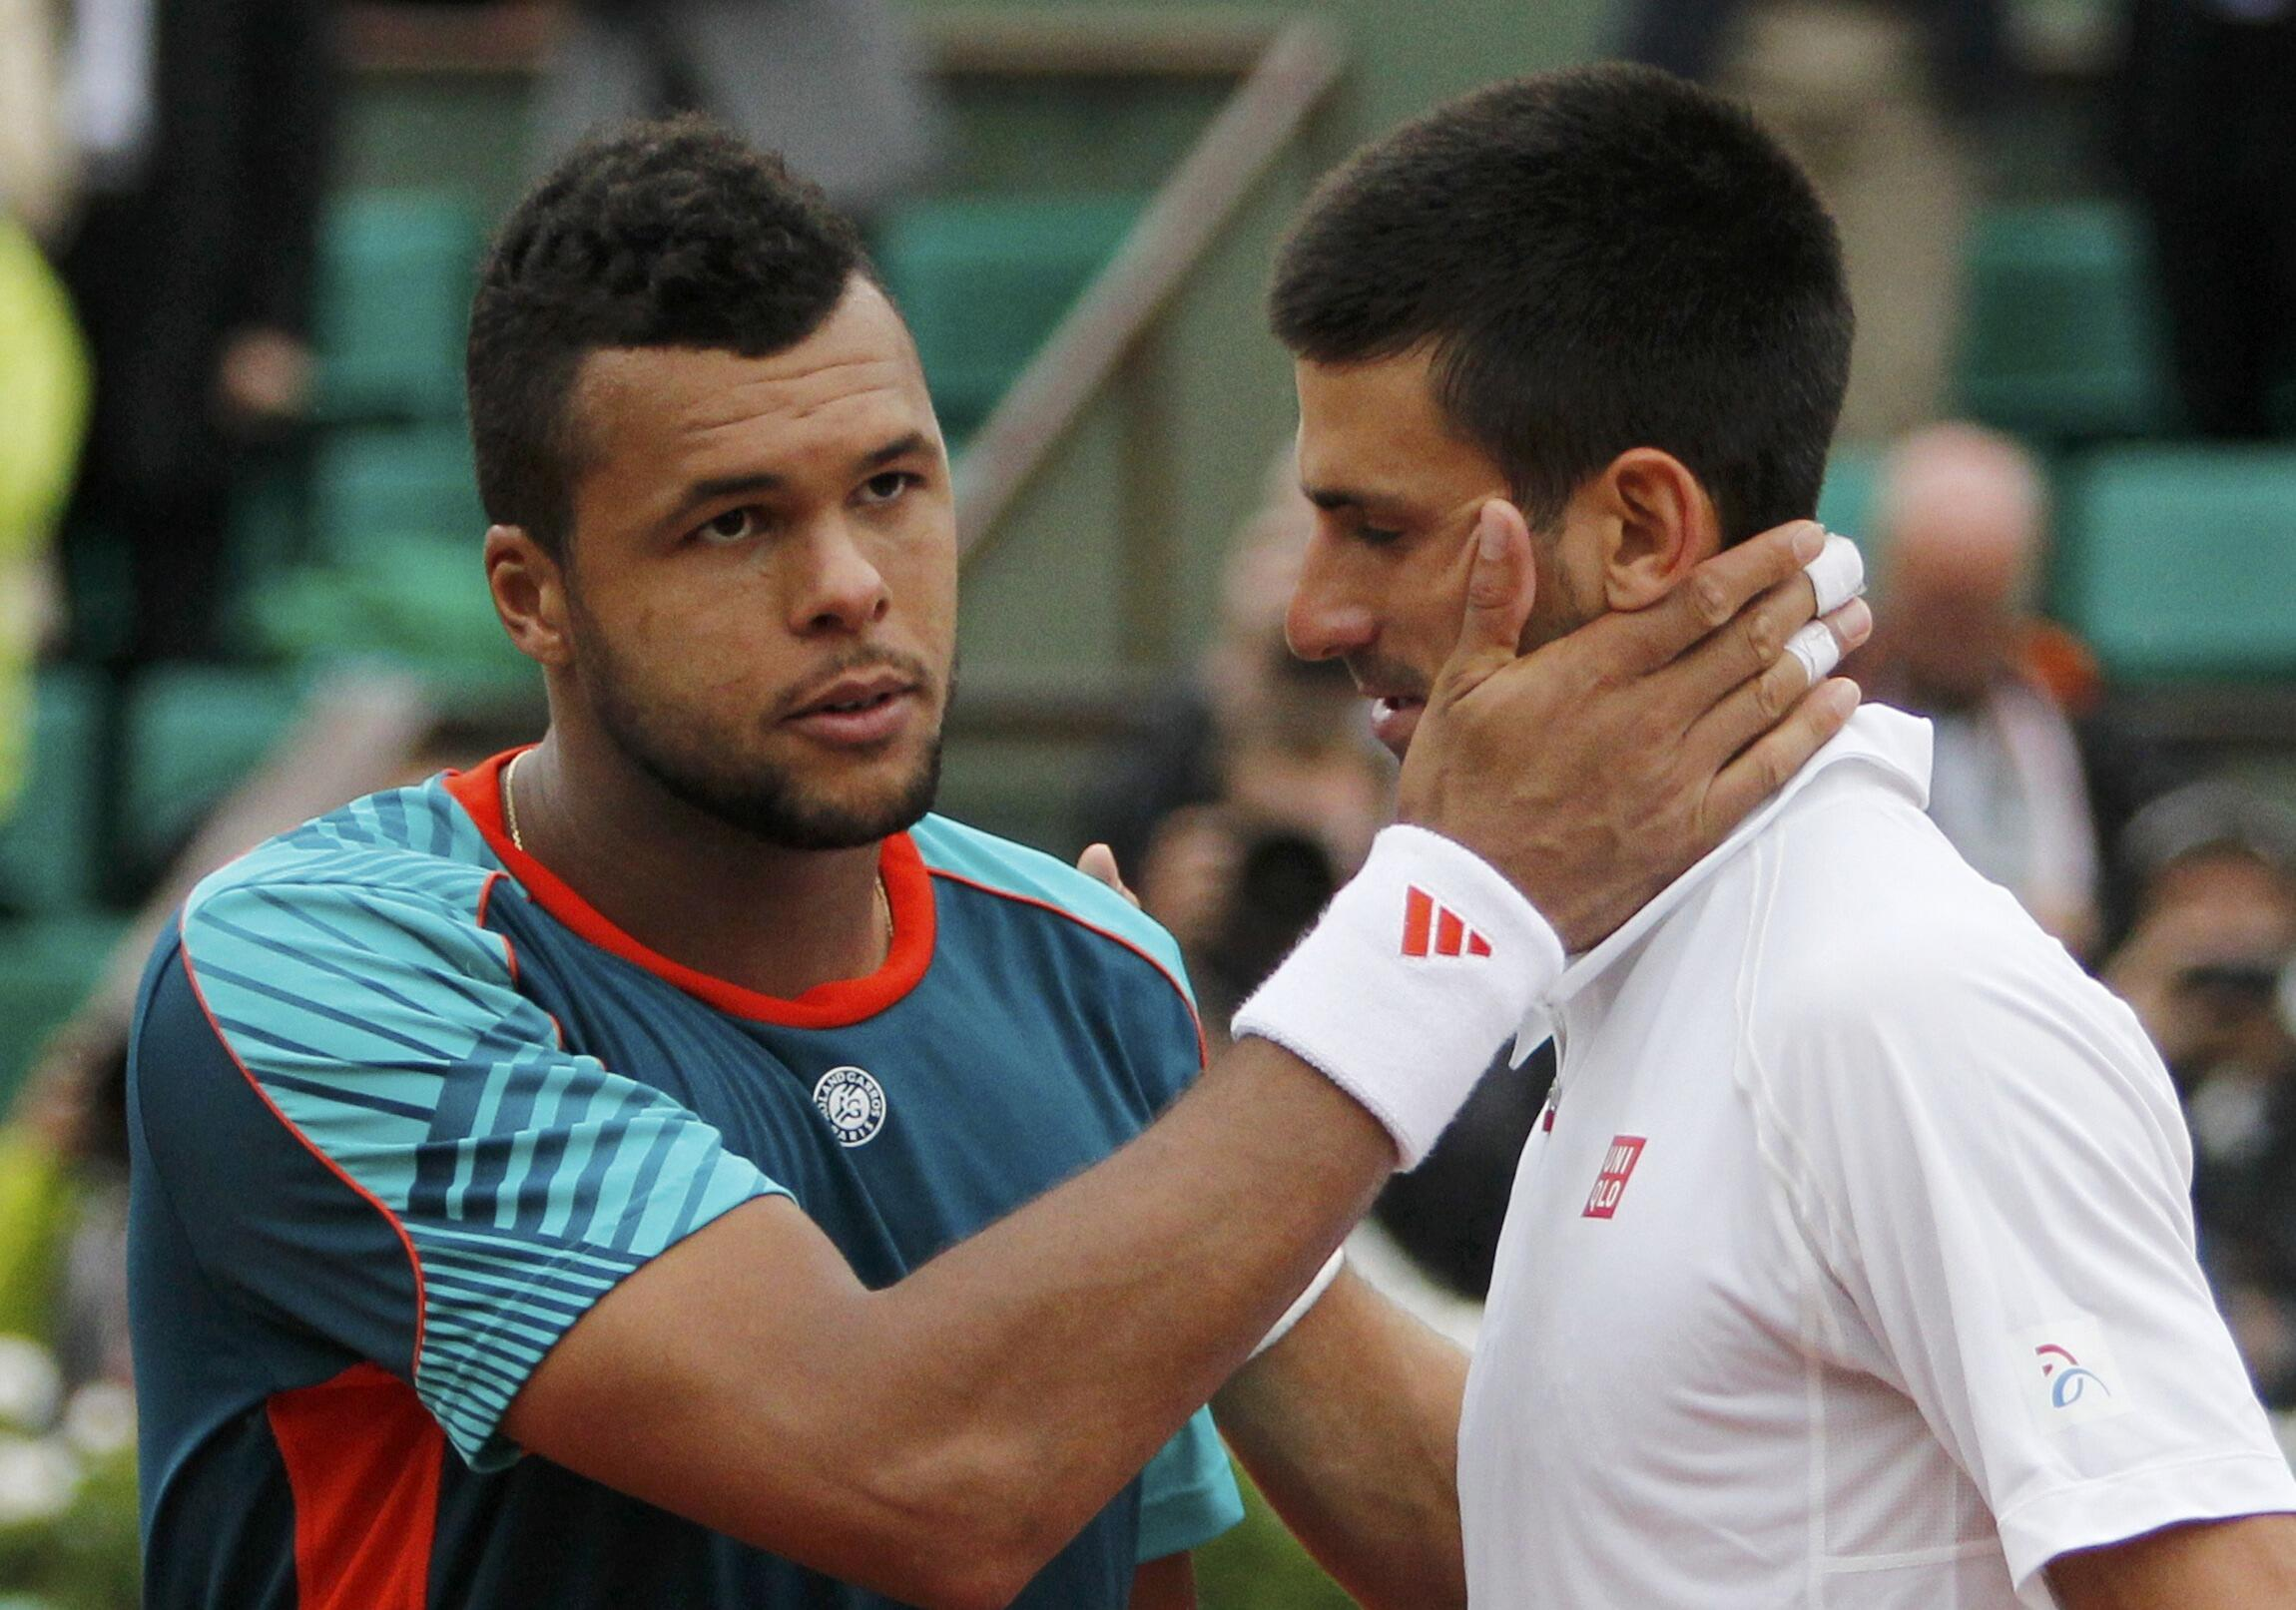 Novak Djokovic of Serbia shakes hands with Jo-Wilfried Tsonga of France after winning his quarter-final match, 5 June, 2012